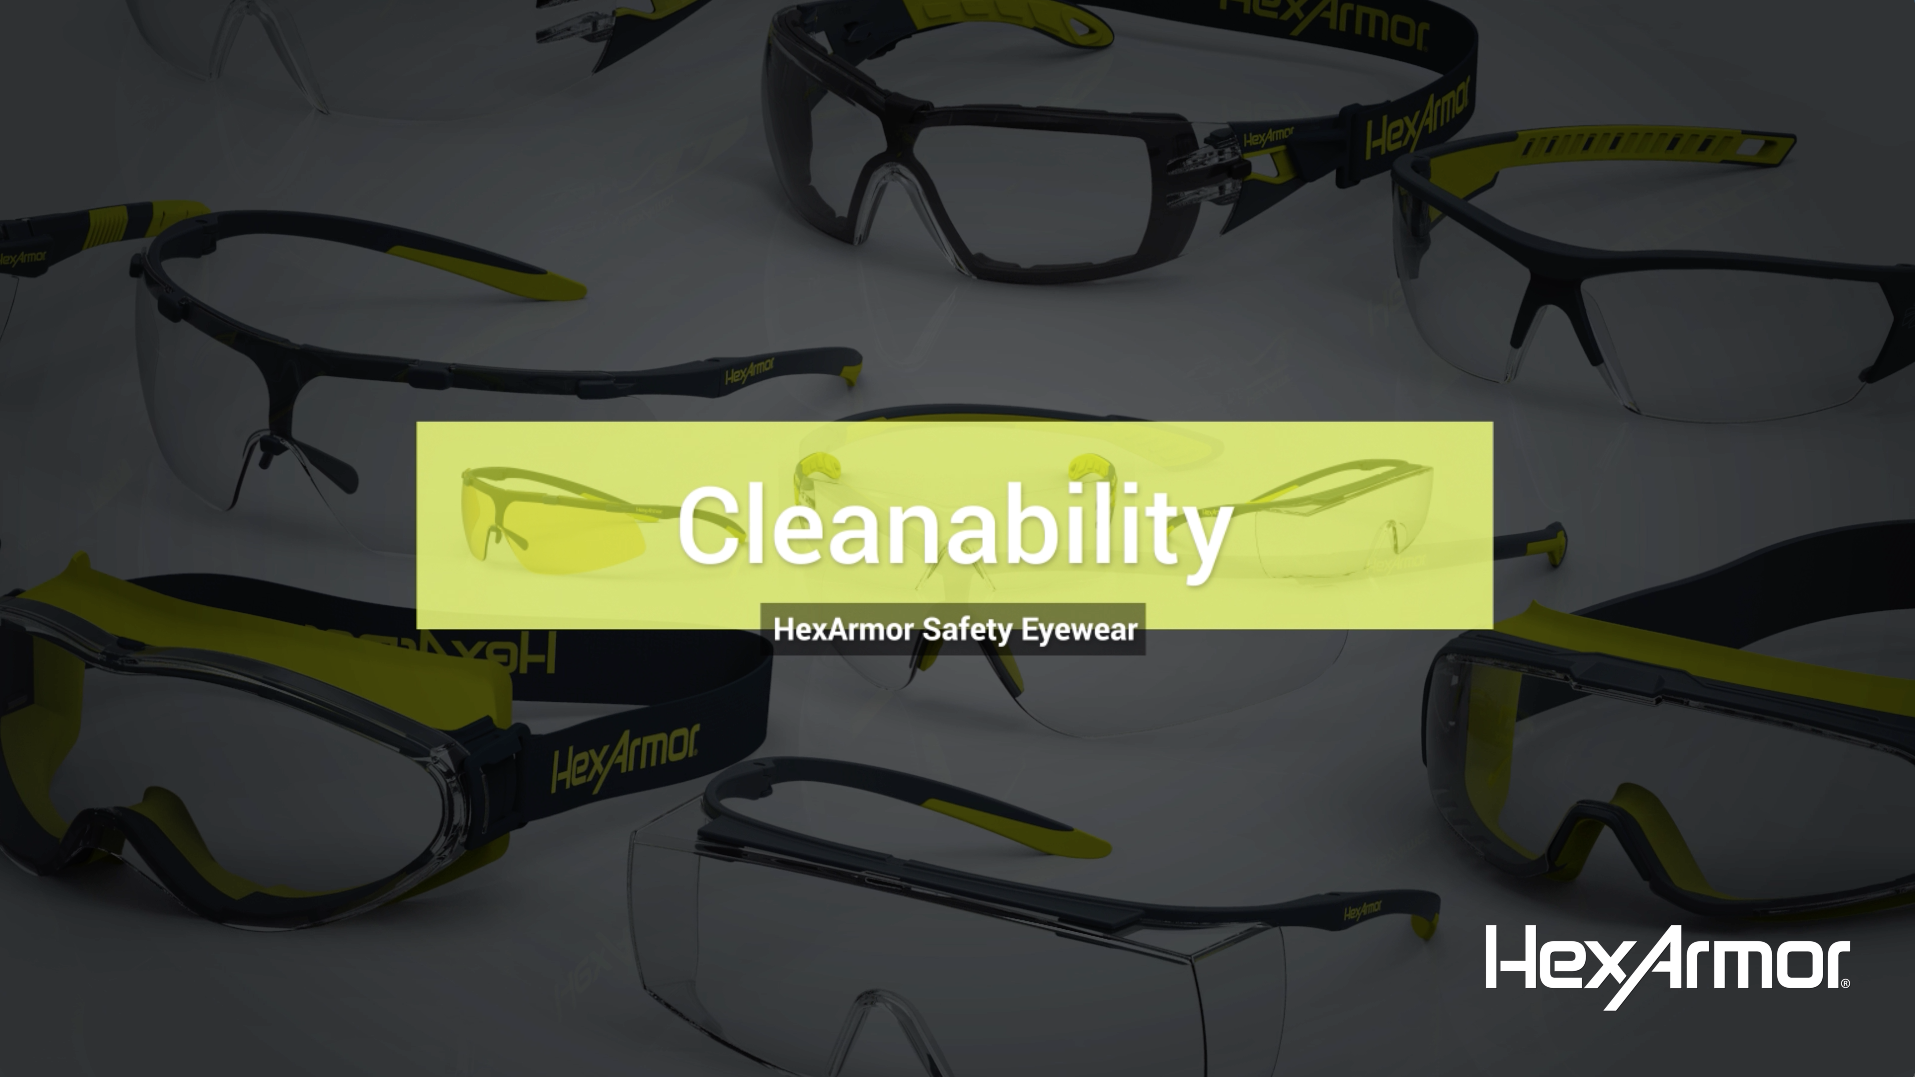 Cleanability — HexArmor Safety Eyewear